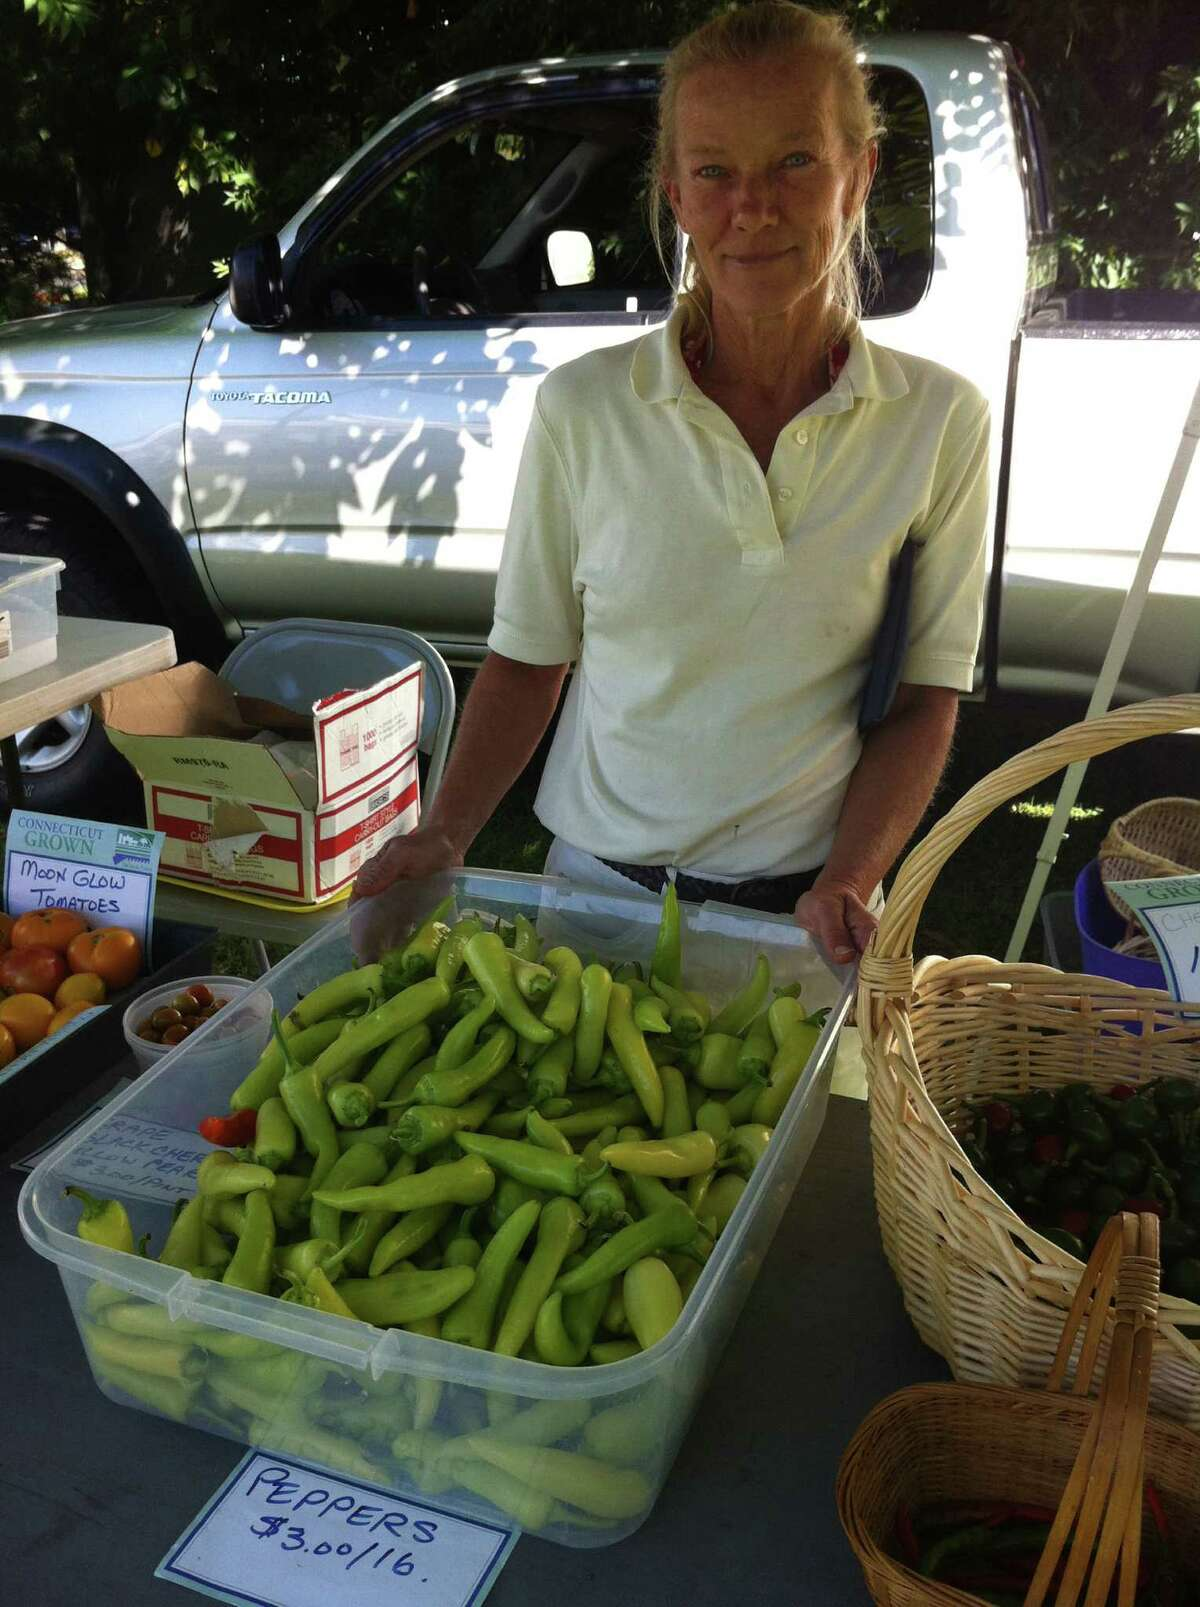 """Sandy Wityak, 50, of Danbury, nurtures a backyard garden to stock her produce stand at the farmers market in Danbury. She is tired of the """"bickering"""" in the U.S. Senate race between Linda McMahon and Chris Murphy. She wants to see a sharper focus on the issues affecting Connecticut and the country."""